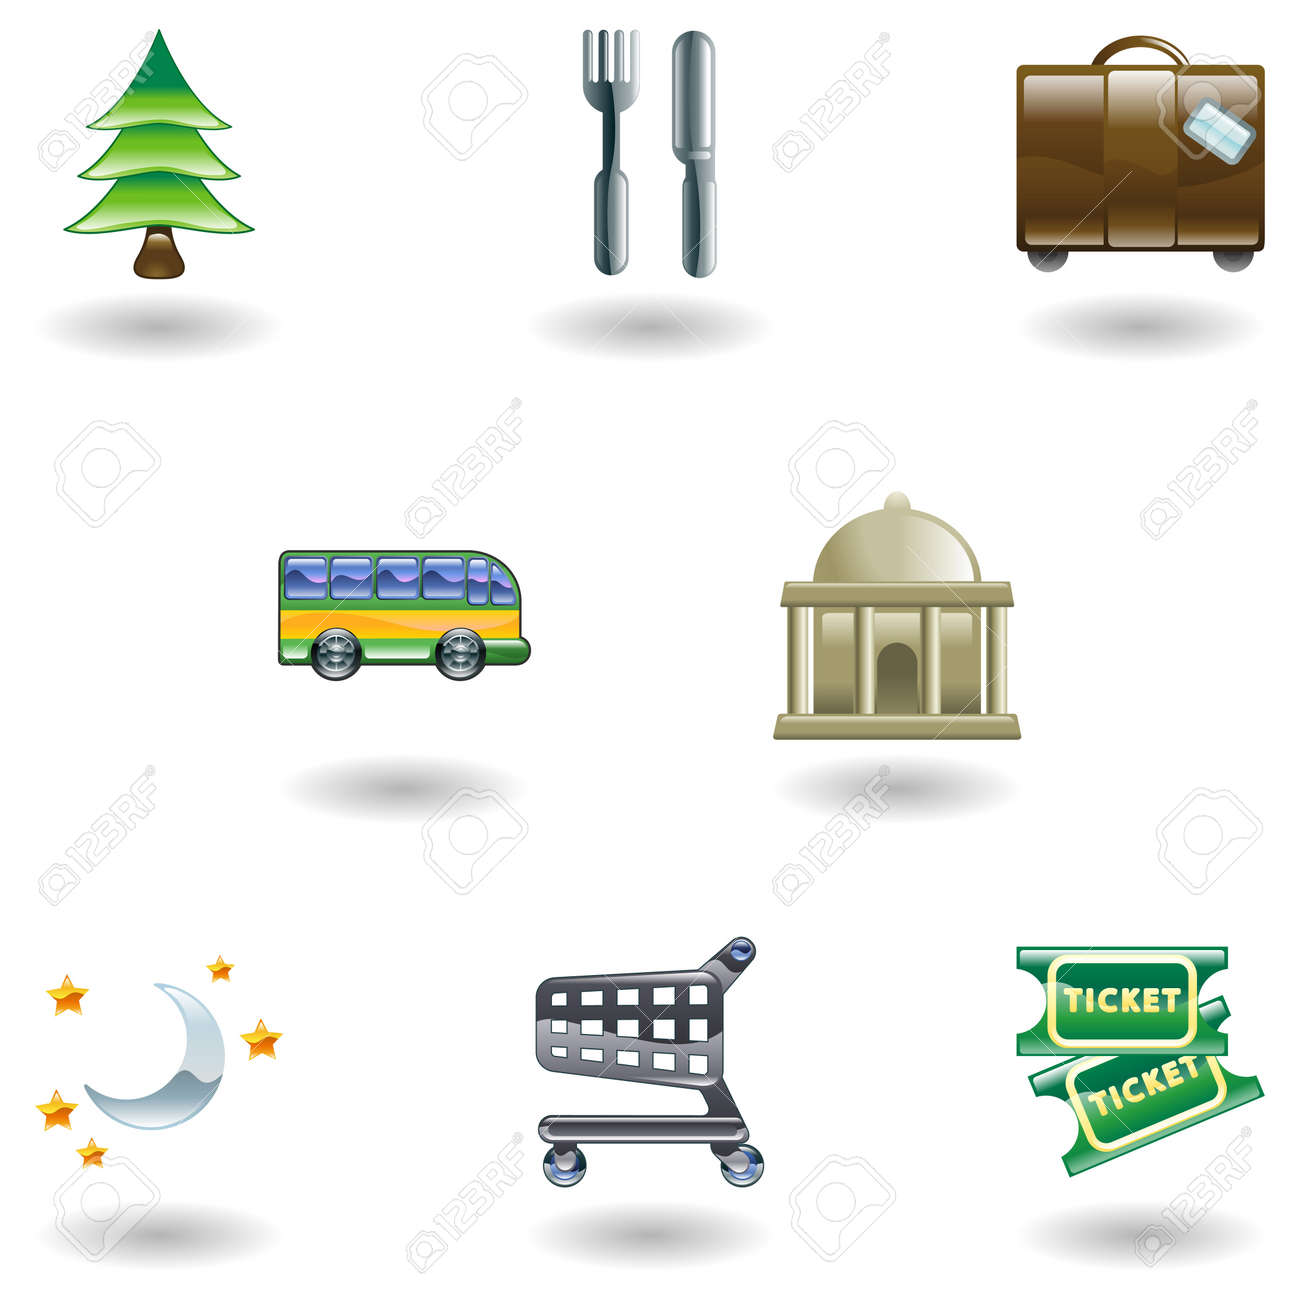 Tourist locations icon set Icon set relating to city or location information for tourist web sites or maps etc. Stock Vector - 4587388